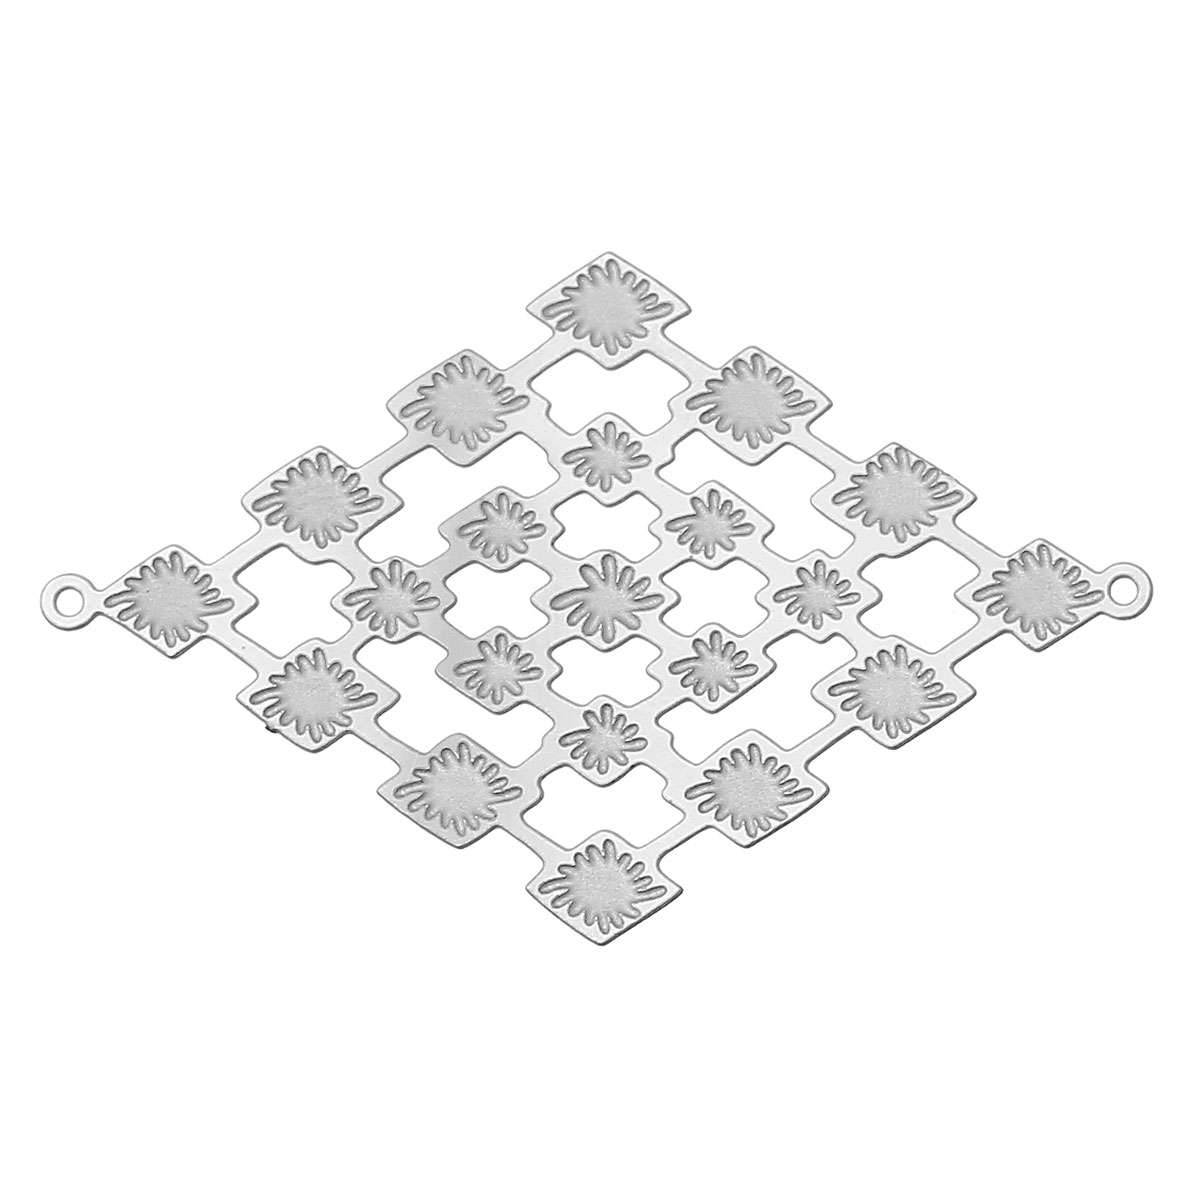 8SEASONS Stainless Steel Connectors Findings Rhombus Silver Tone Color Flower Pattern Hollow 40mm(1 5/8)x 26mm(1),20 PCs